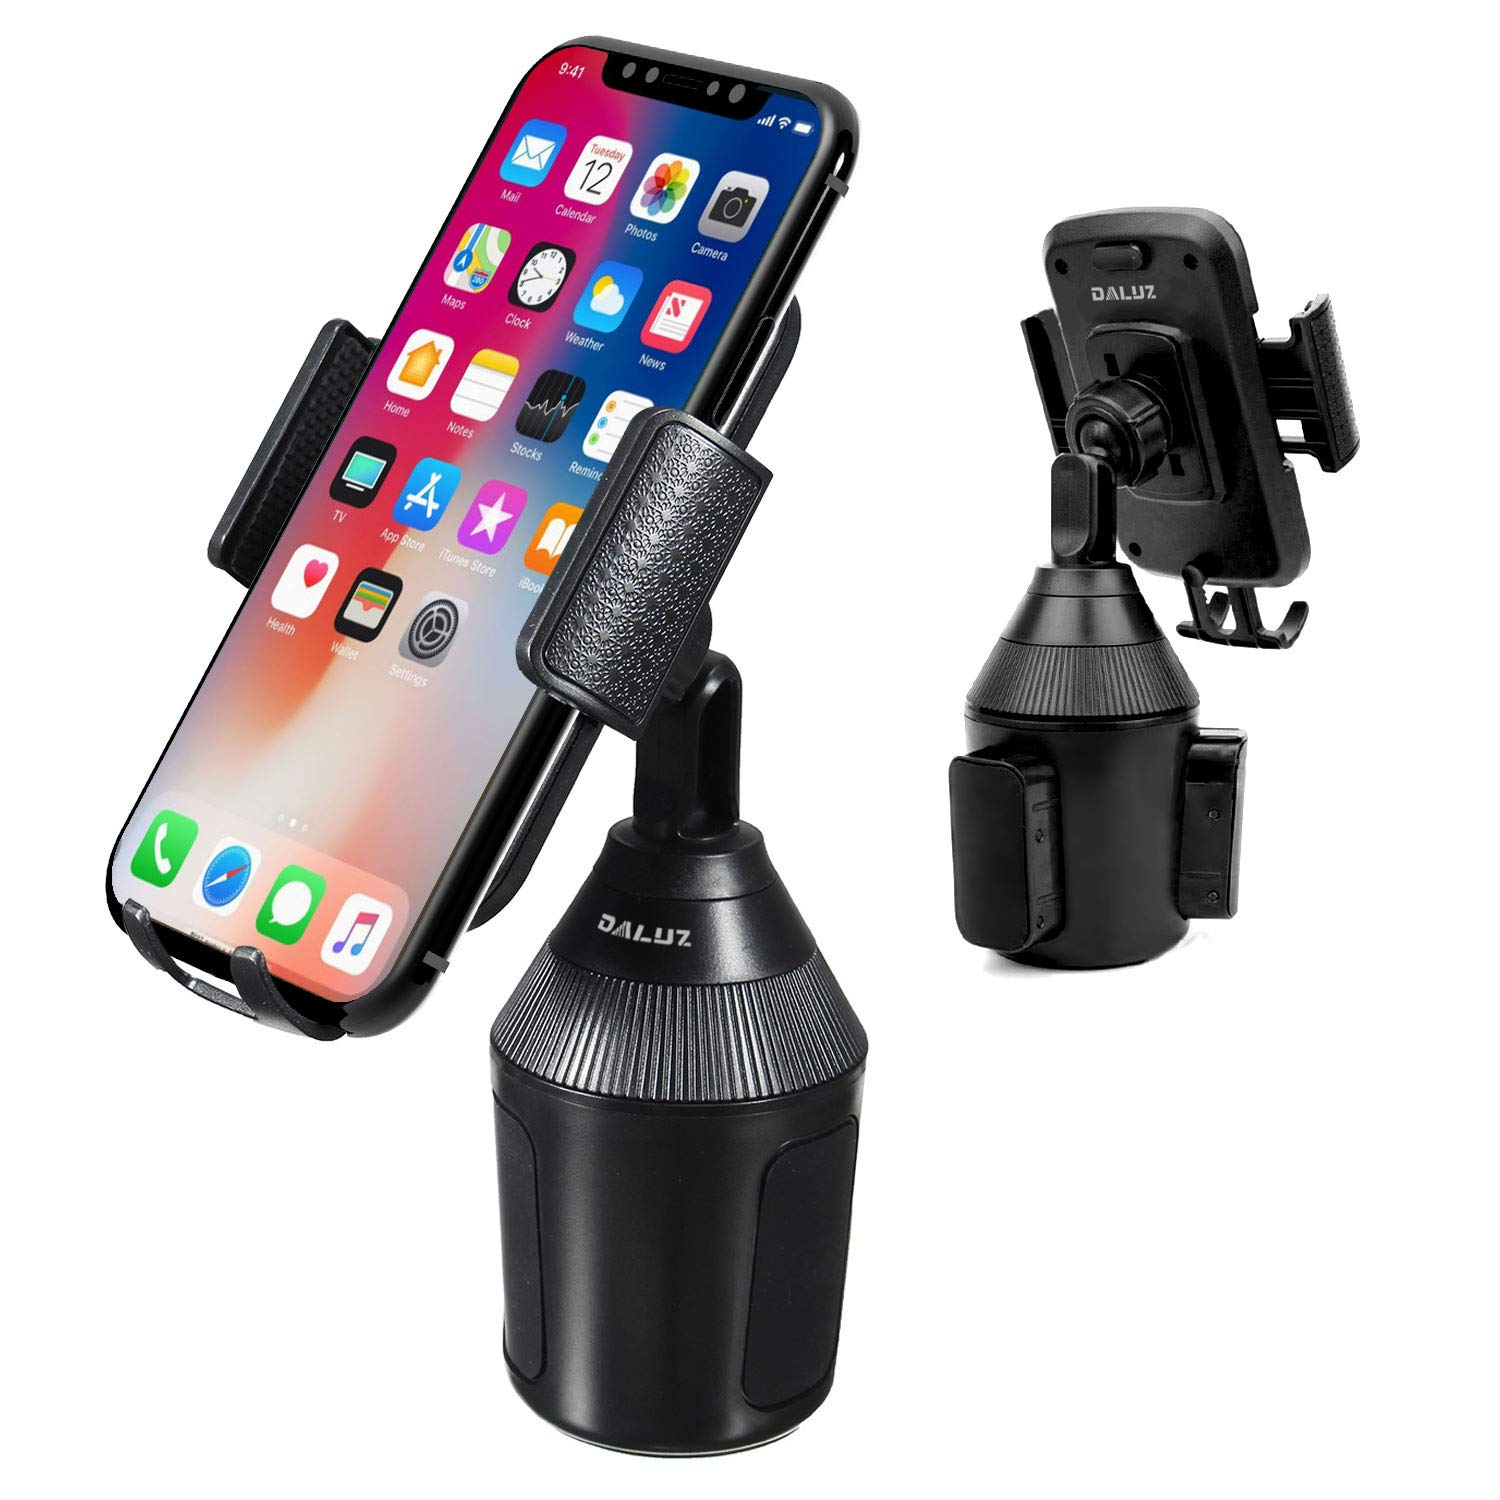 Cup Holder Phone Mount for Car Universal Adjustable Car Mount for iPhone Xs/Max/X/XR/8/8 Plus,Samsung Note 9/ S10+/ S9/ S9+/ S8 by DALUZ